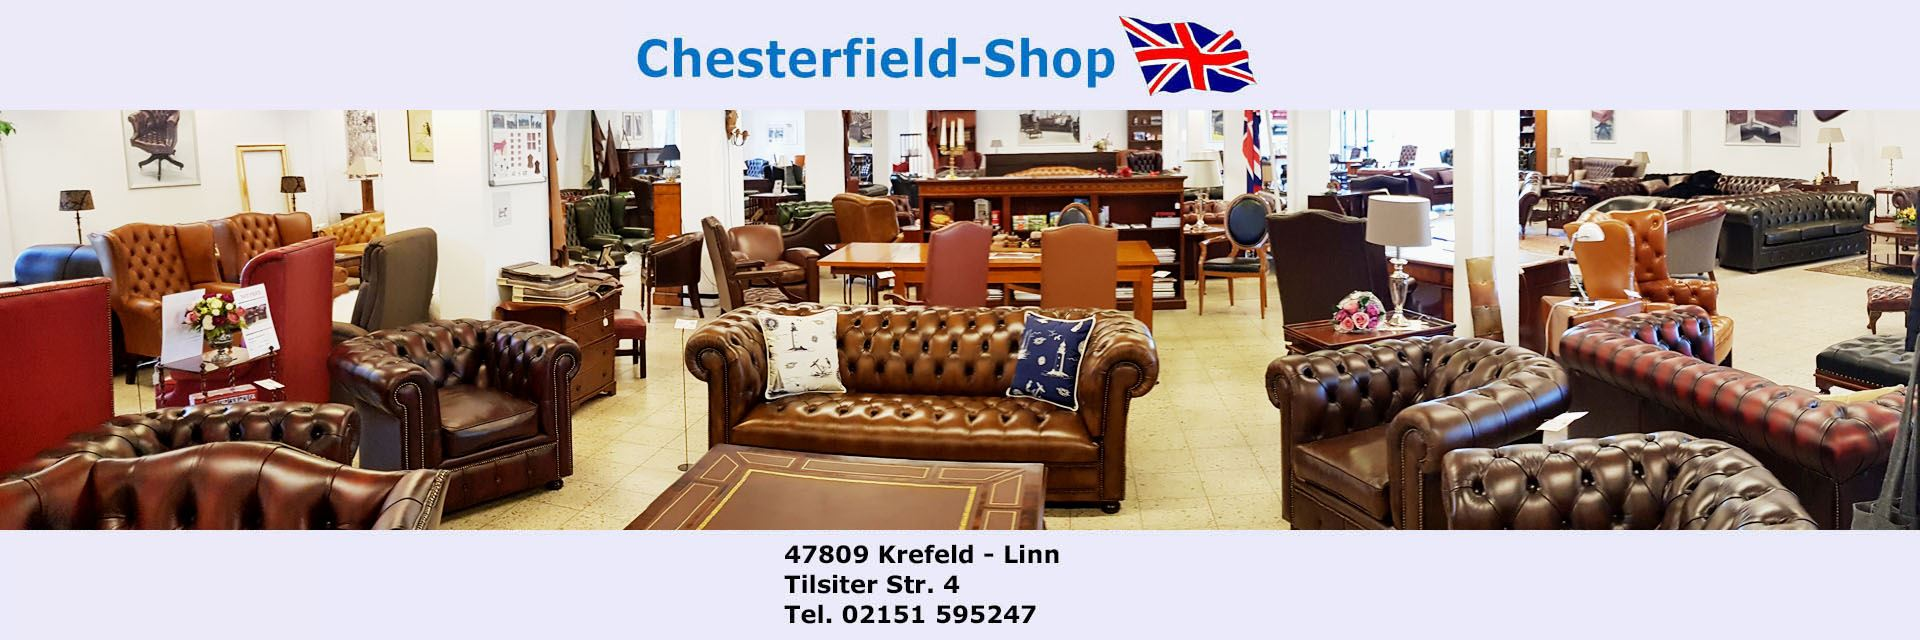 Made Sofa Shop Chesterfield Shop De Chesterfield Sofas Sessel Made In